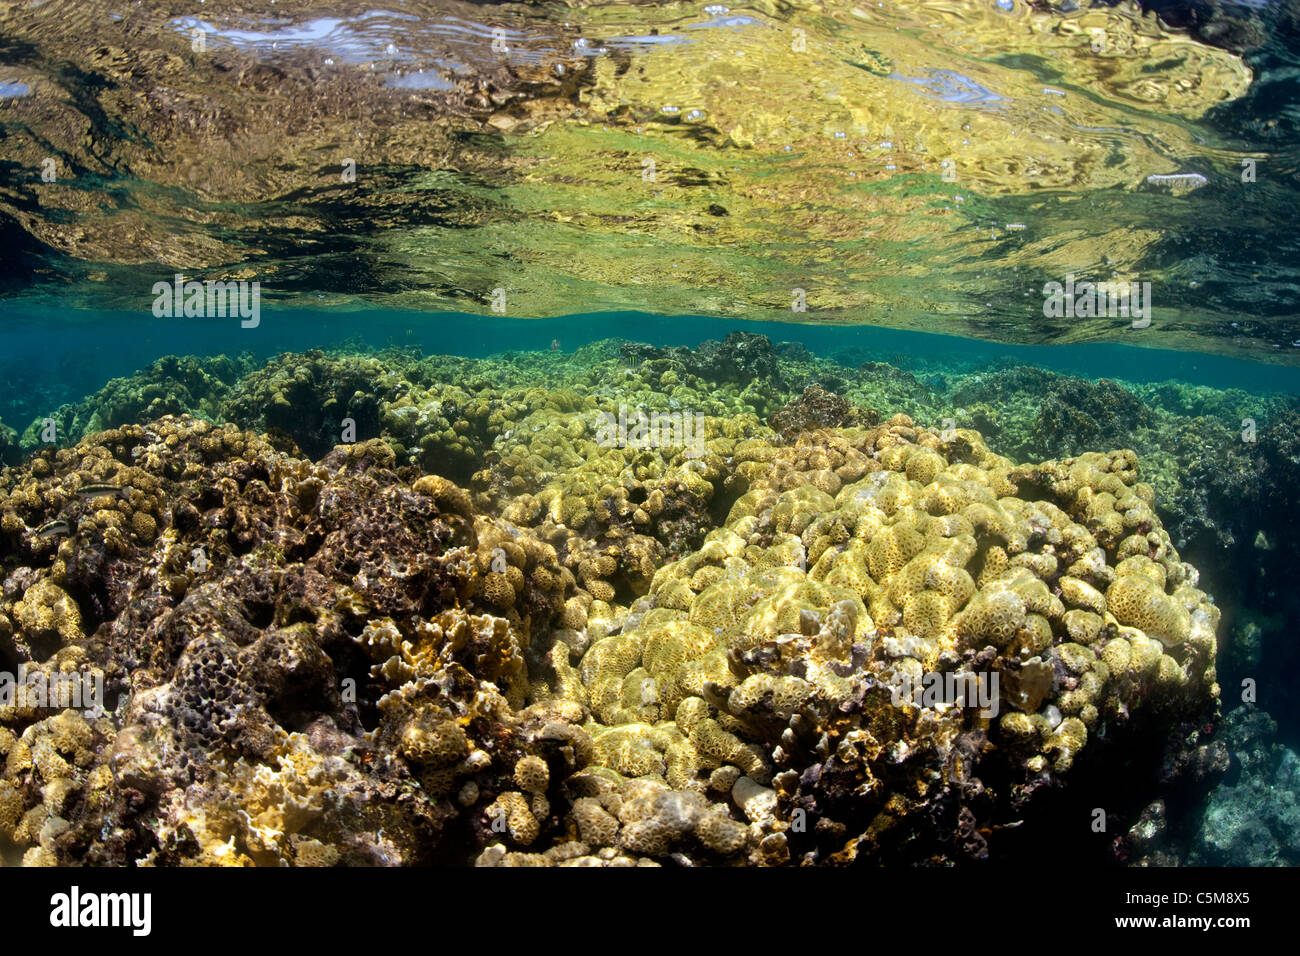 A coral reef flat at the surface of the ocean at Swan Islands, a remote group of islands 90 miles off the coast Stock Photo